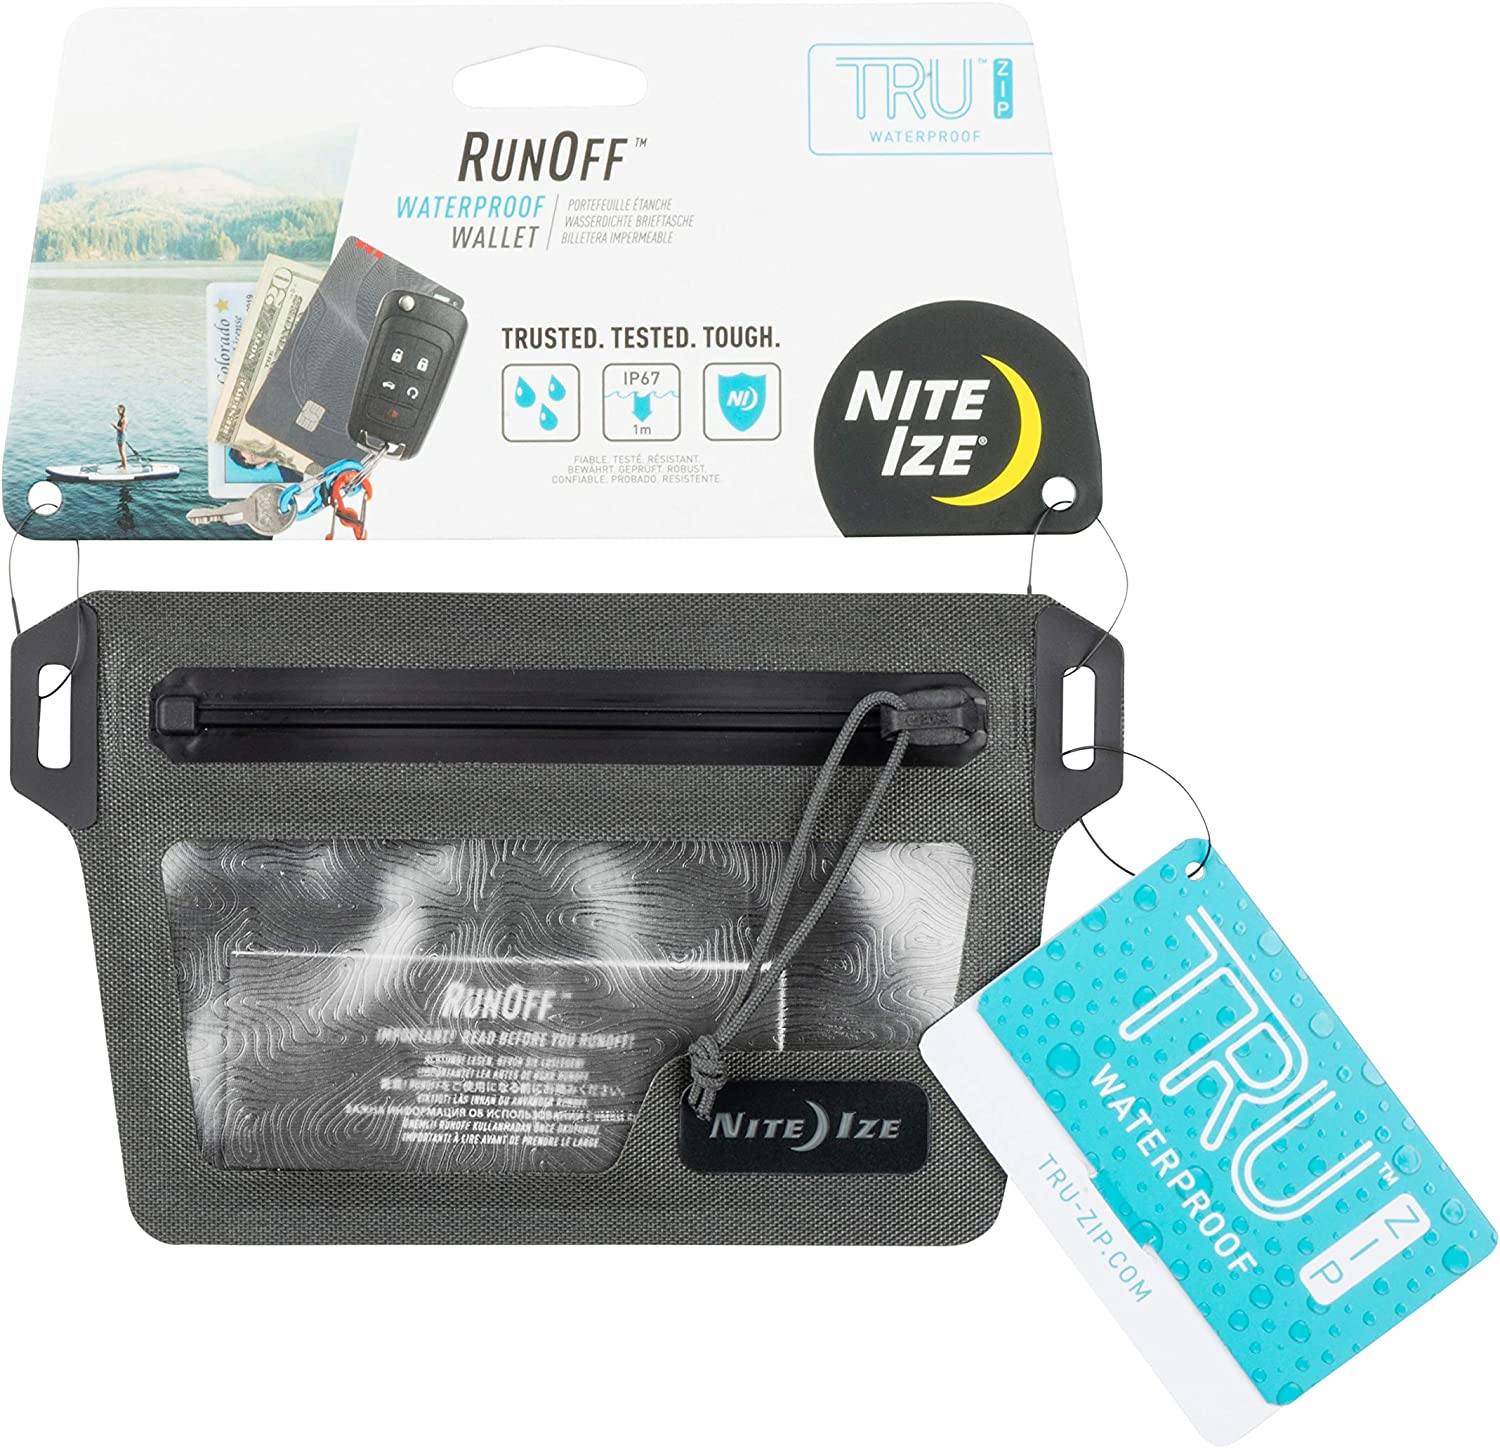 Nite Ize Runoff Waterproof Max 85% OFF Be super welcome Wallet Trusted Protection for Tough